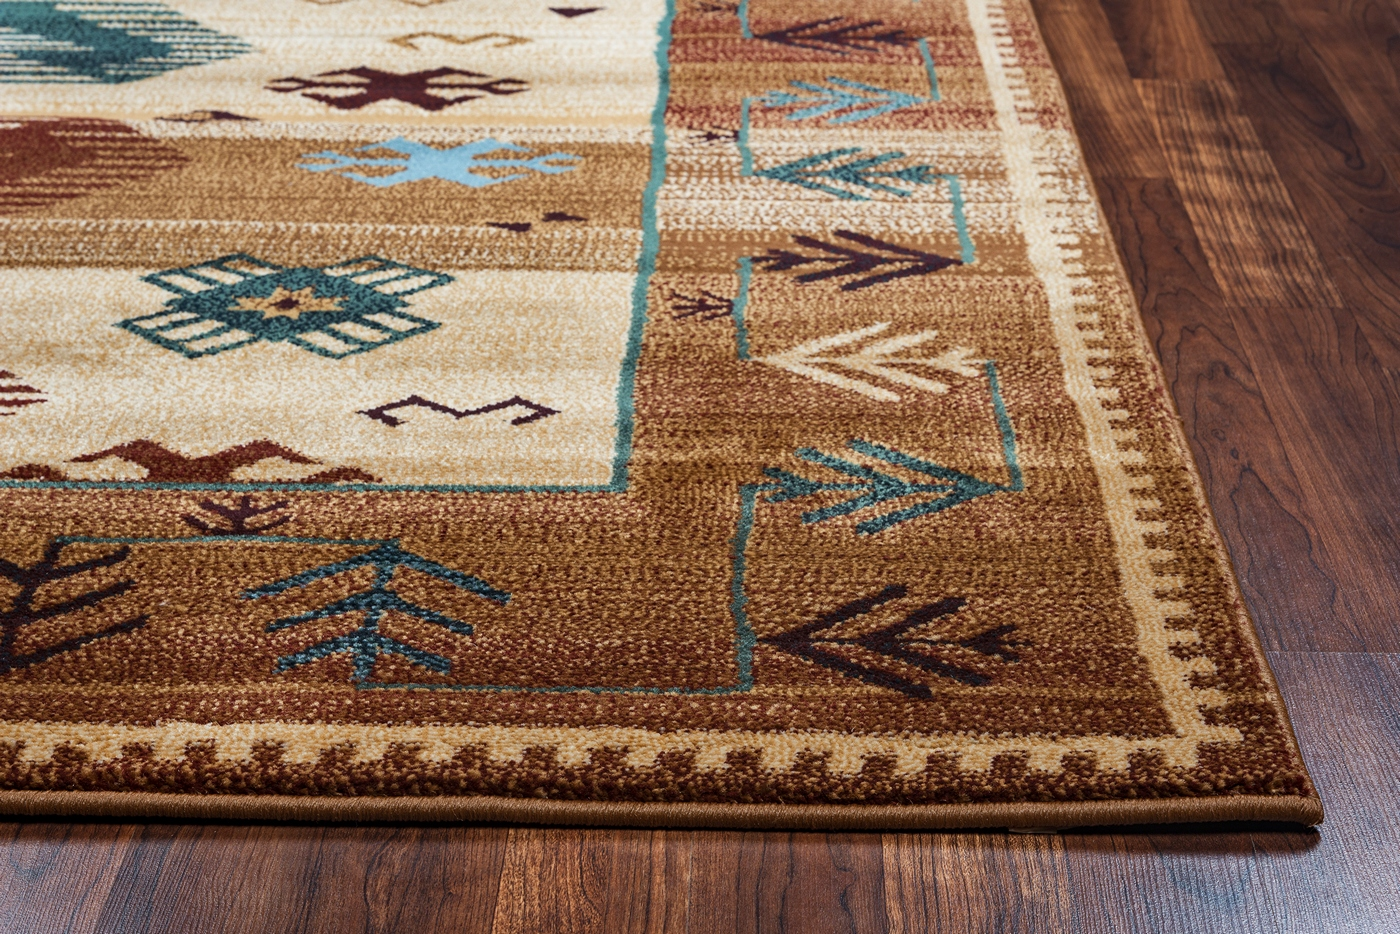 Bellevue Border Southwest Tribal Area Rug In Earthy Colors